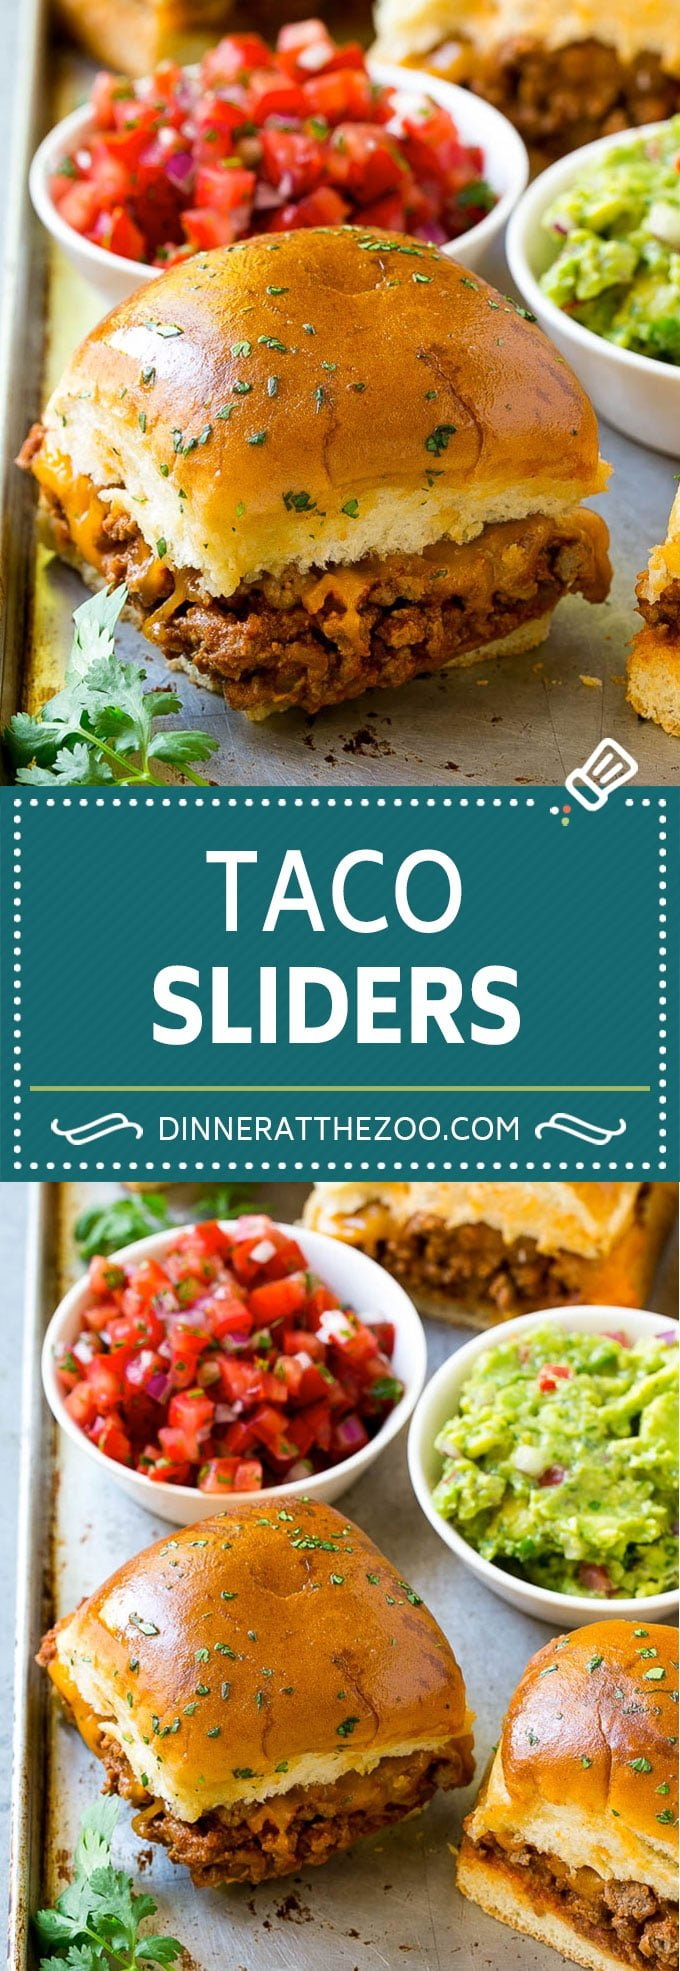 Taco Sliders Recipe | Beef Slider Sandwiches | Easy Slider Sandwiches #sandwich #taco #beef #cheese #snack #appetizer #dinneratthezoo